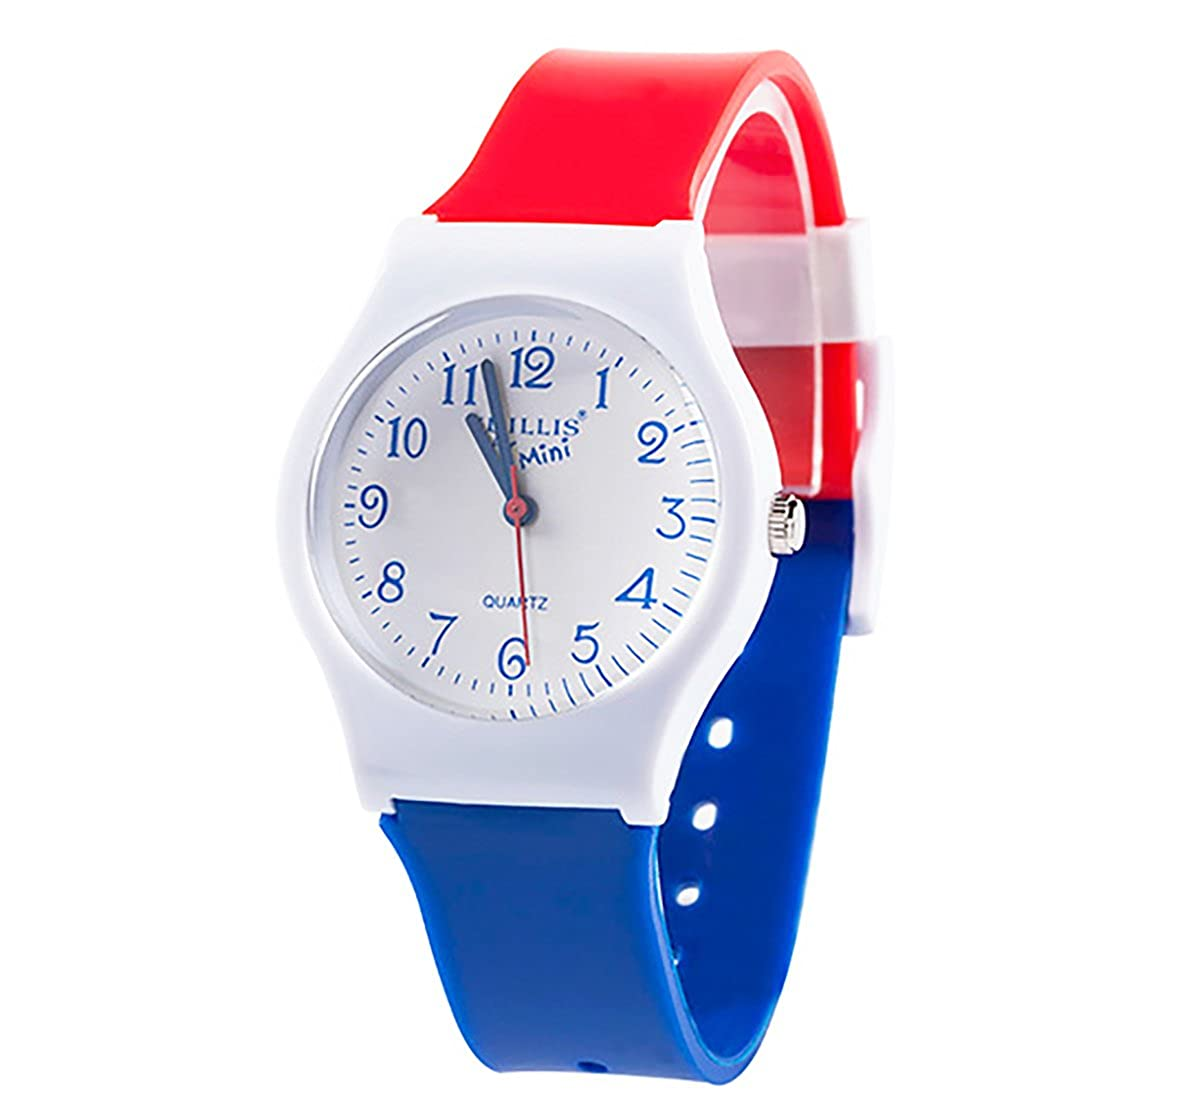 Amazon.com: Kids Boys Girls Children Watches,Teen Student Time Teacher Watch Resin Band Wristwatches for Boys Girls(Red&Blue): Watches